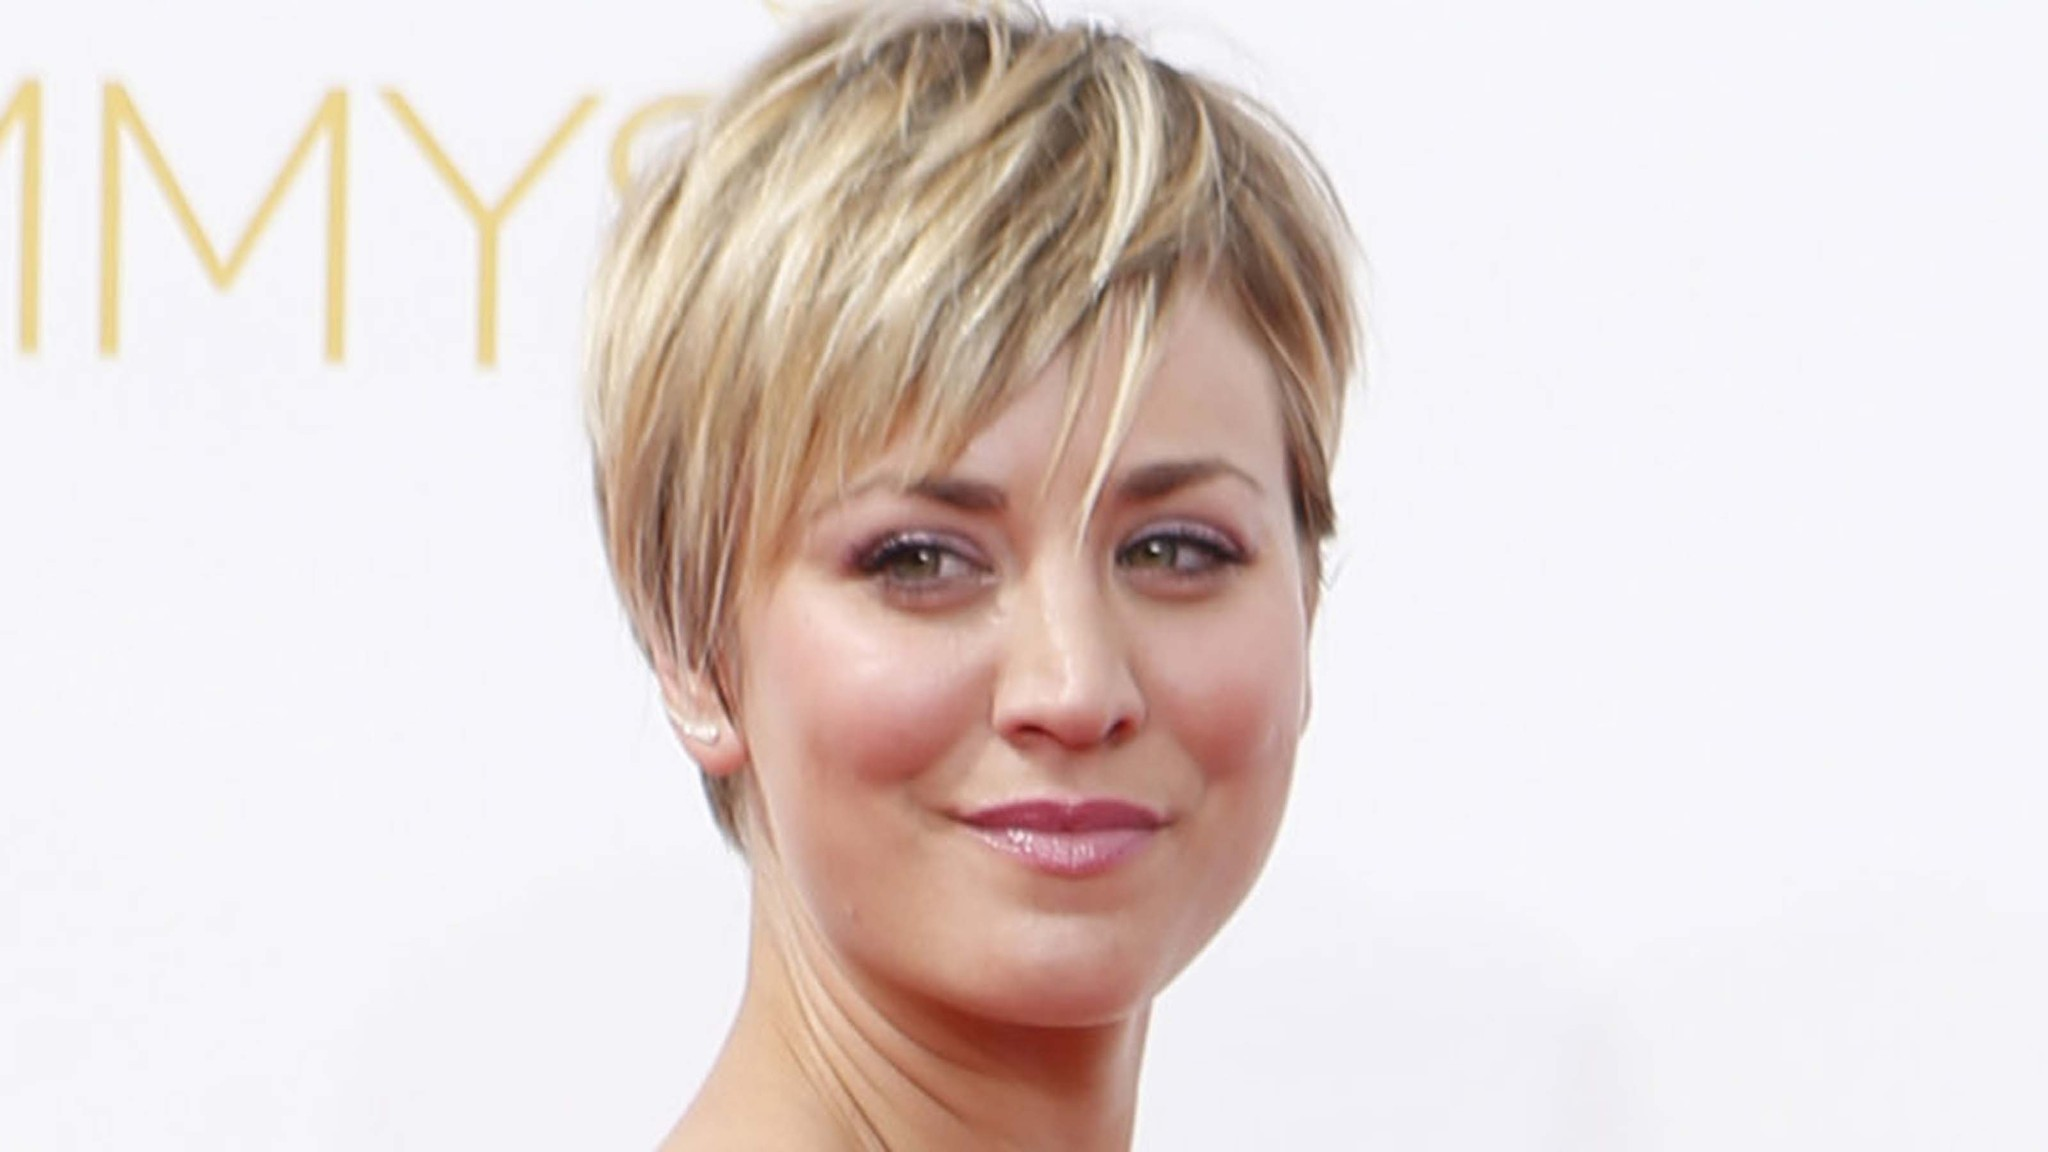 Kaley cuoco s instagram pictures of her short haircut are all we need